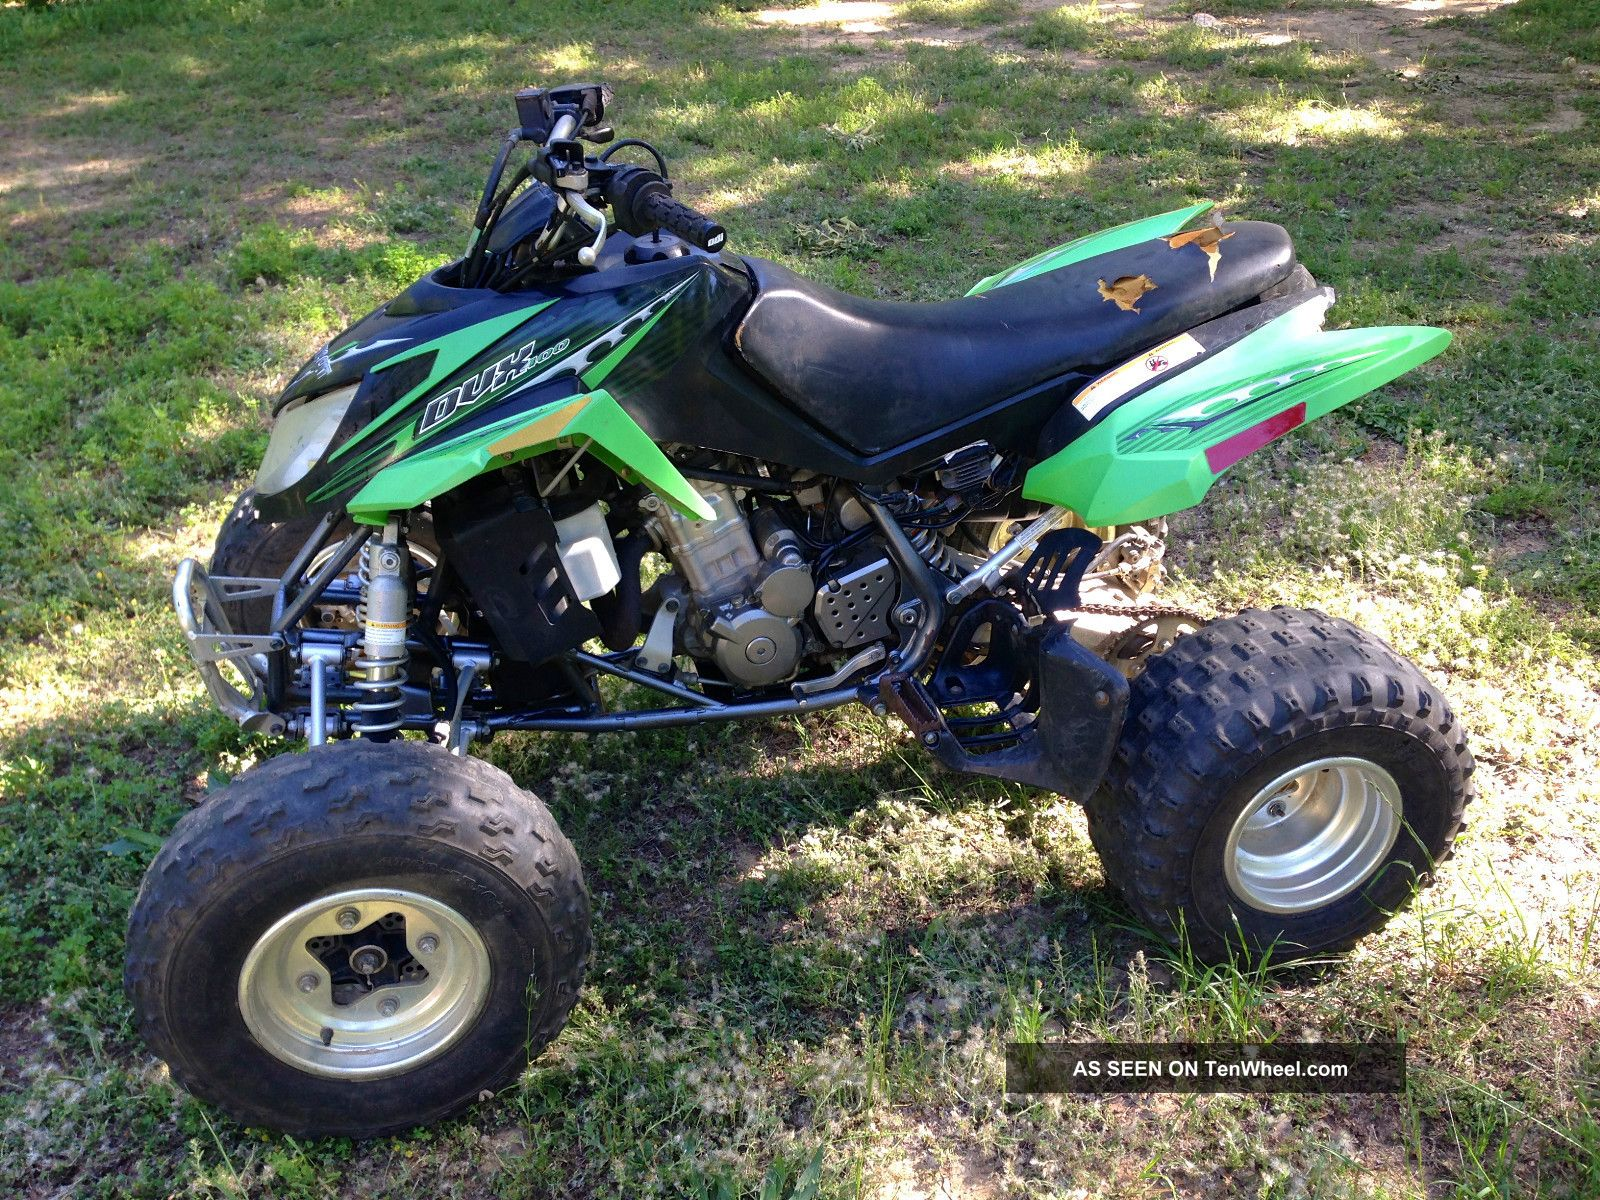 270945455566 moreover Razor Documents likewise Watch likewise 7C 7C  quadparking fr 7Cimgannonces 7C1465 as well 22810 2006 yamaha banshee 350cc twin 2   stroke special edition 50th. on 2004 arctic cat 300 4x4